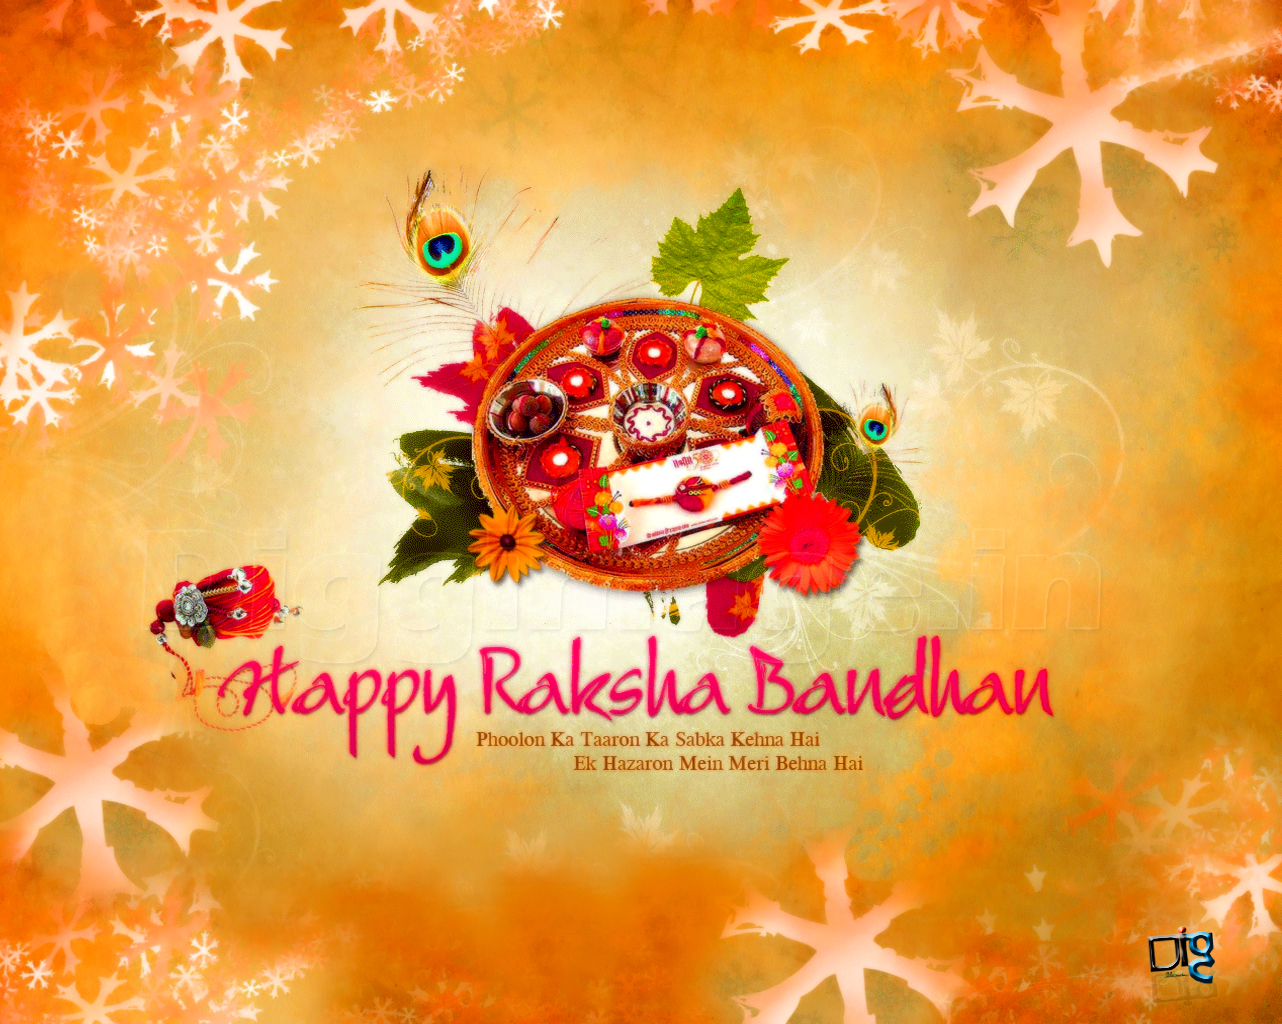 http://1.bp.blogspot.com/-HD8vSRpQZPI/T_7Rx4bhiXI/AAAAAAAABNo/APTDIq7joQk/s1600/Happy+Raksha+Bandan-rakhi+gestival+hindi+wallpapers+images+scraps+orkut.JPG